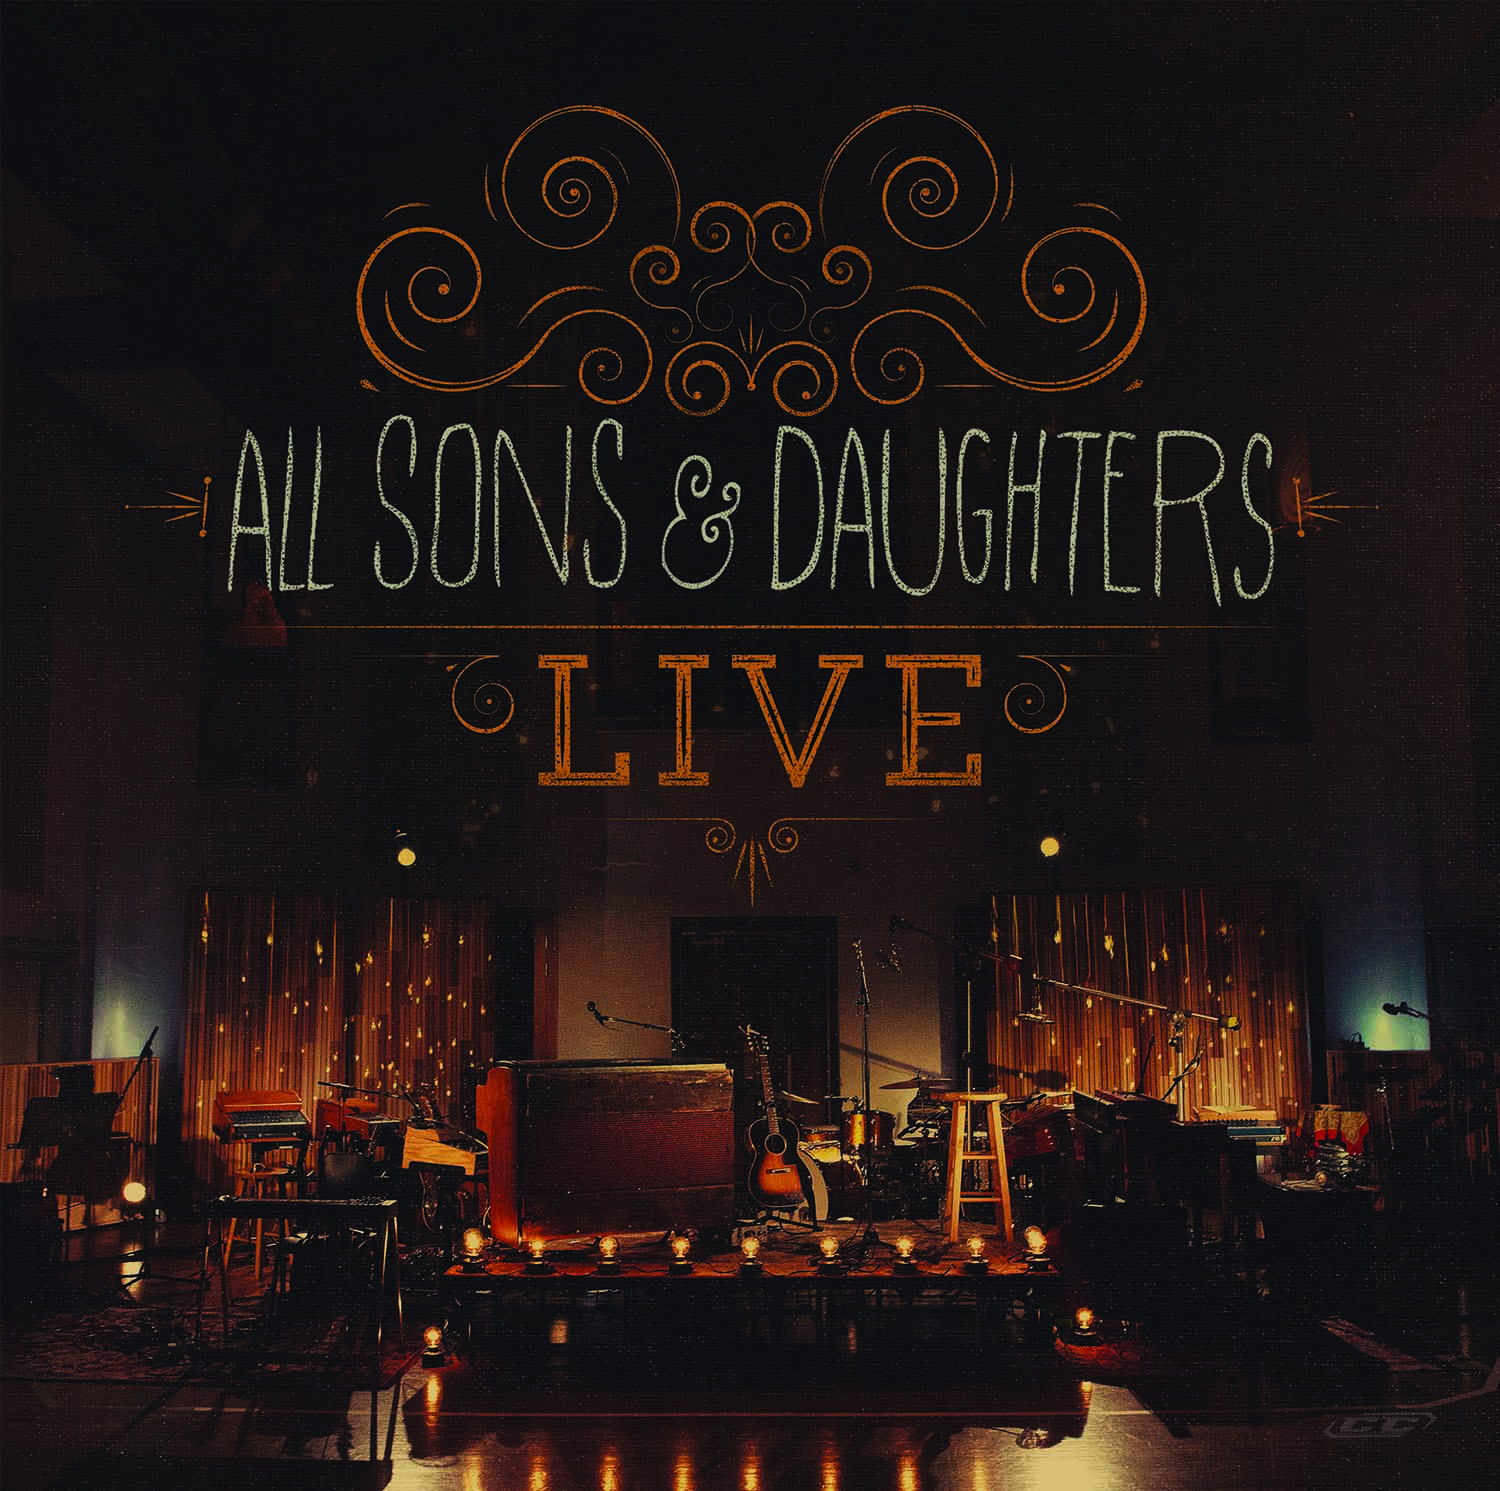 All Sons and Daughters - All Sons and Daughters Live 2013 English Christian Album Download